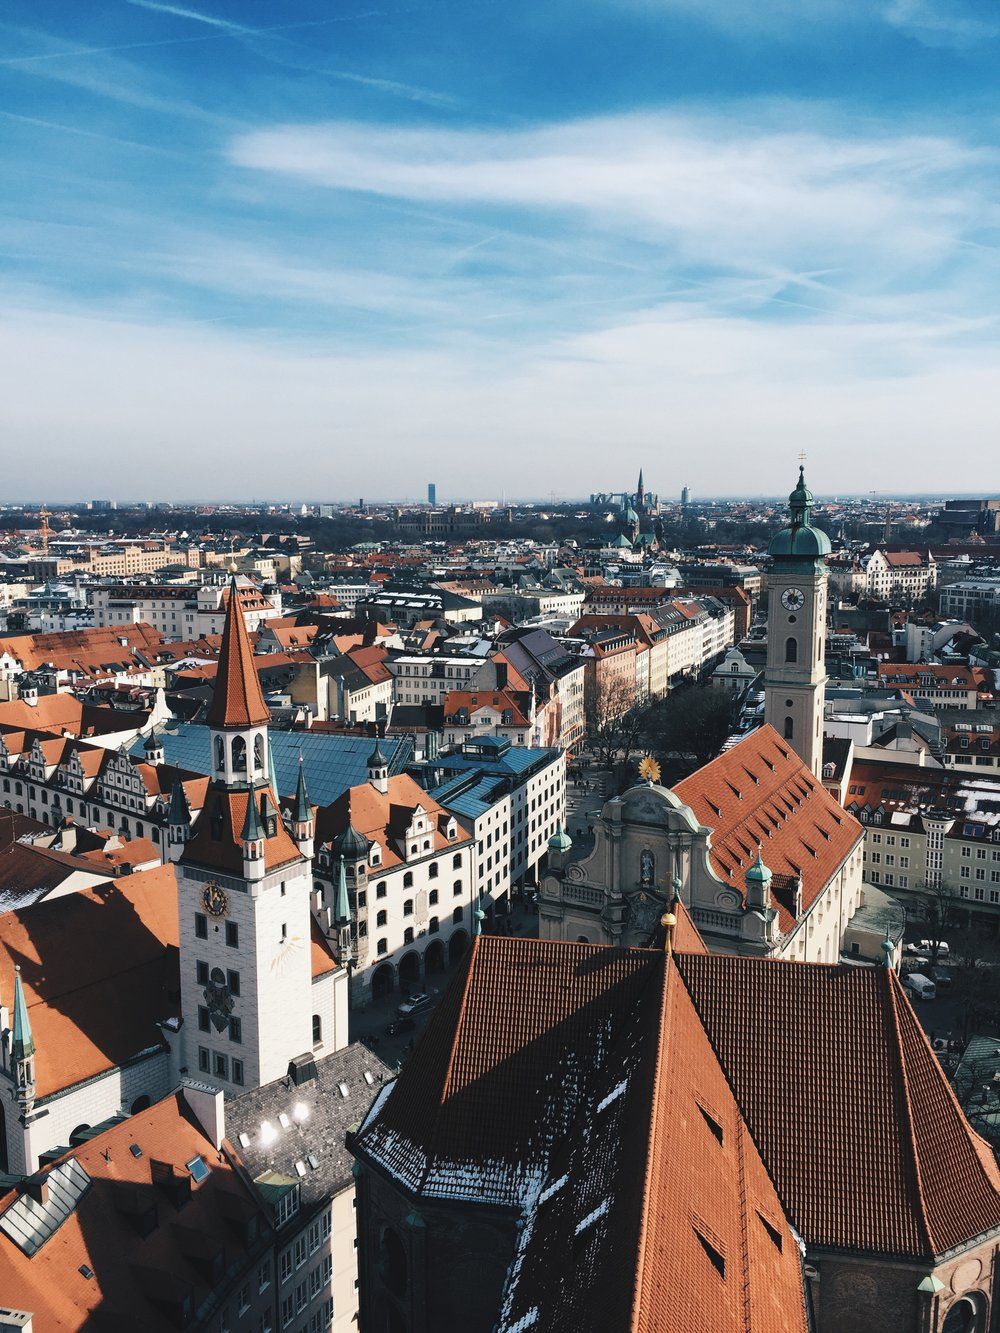 The skyline of Munich's old city ( Altstadt ) from the church of  Frauenkirche